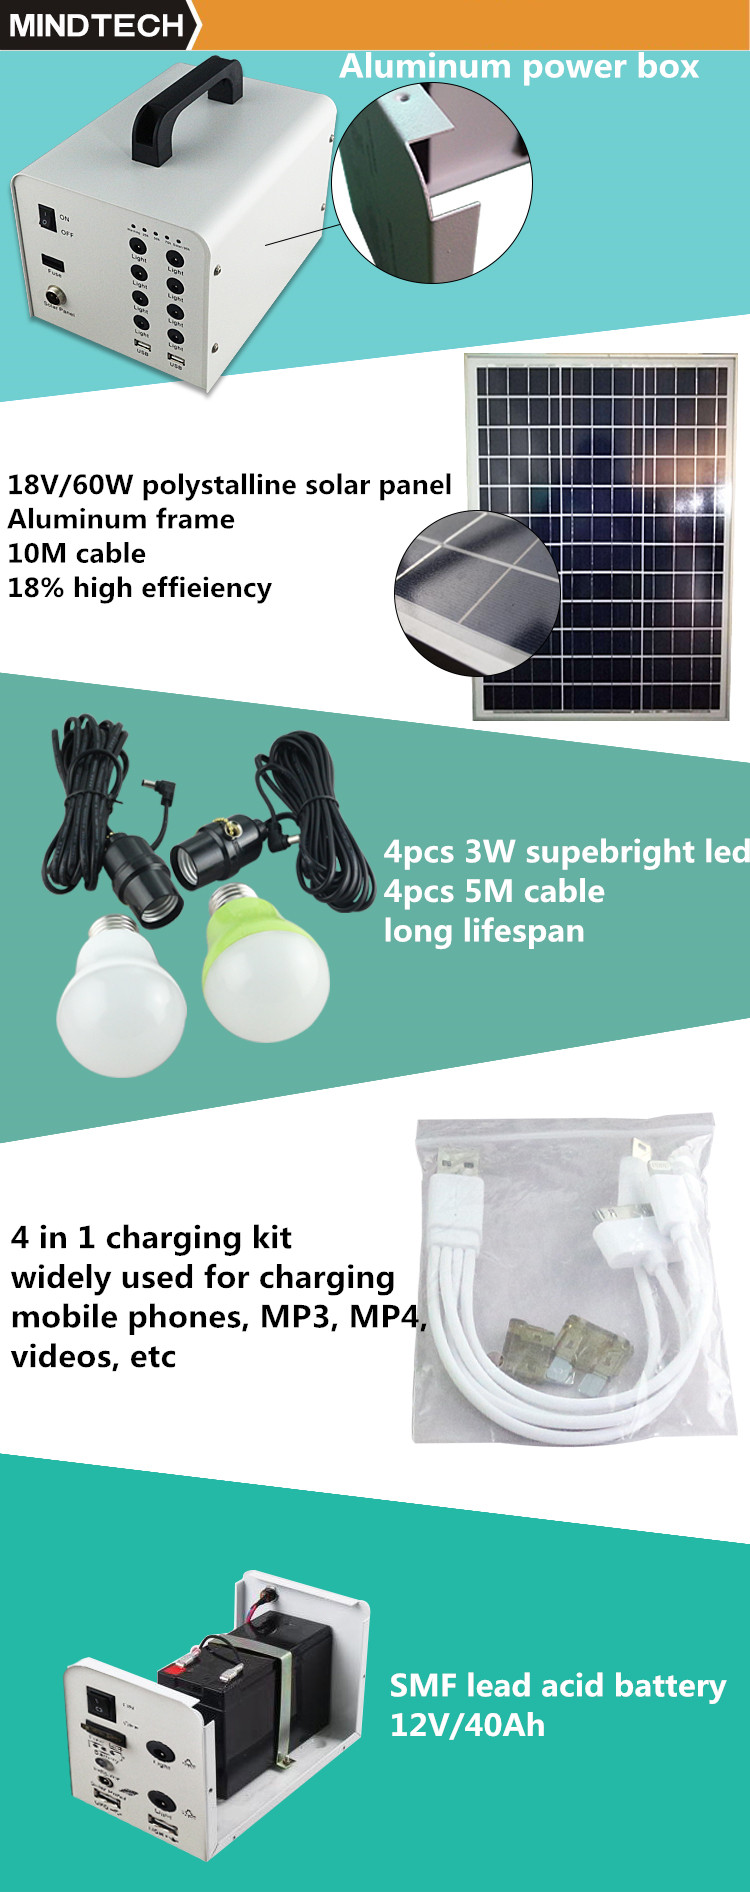 shenzhen mindtech 60W solar power generator system home with 6 pcs led lanterns for fan phone charger and toplap